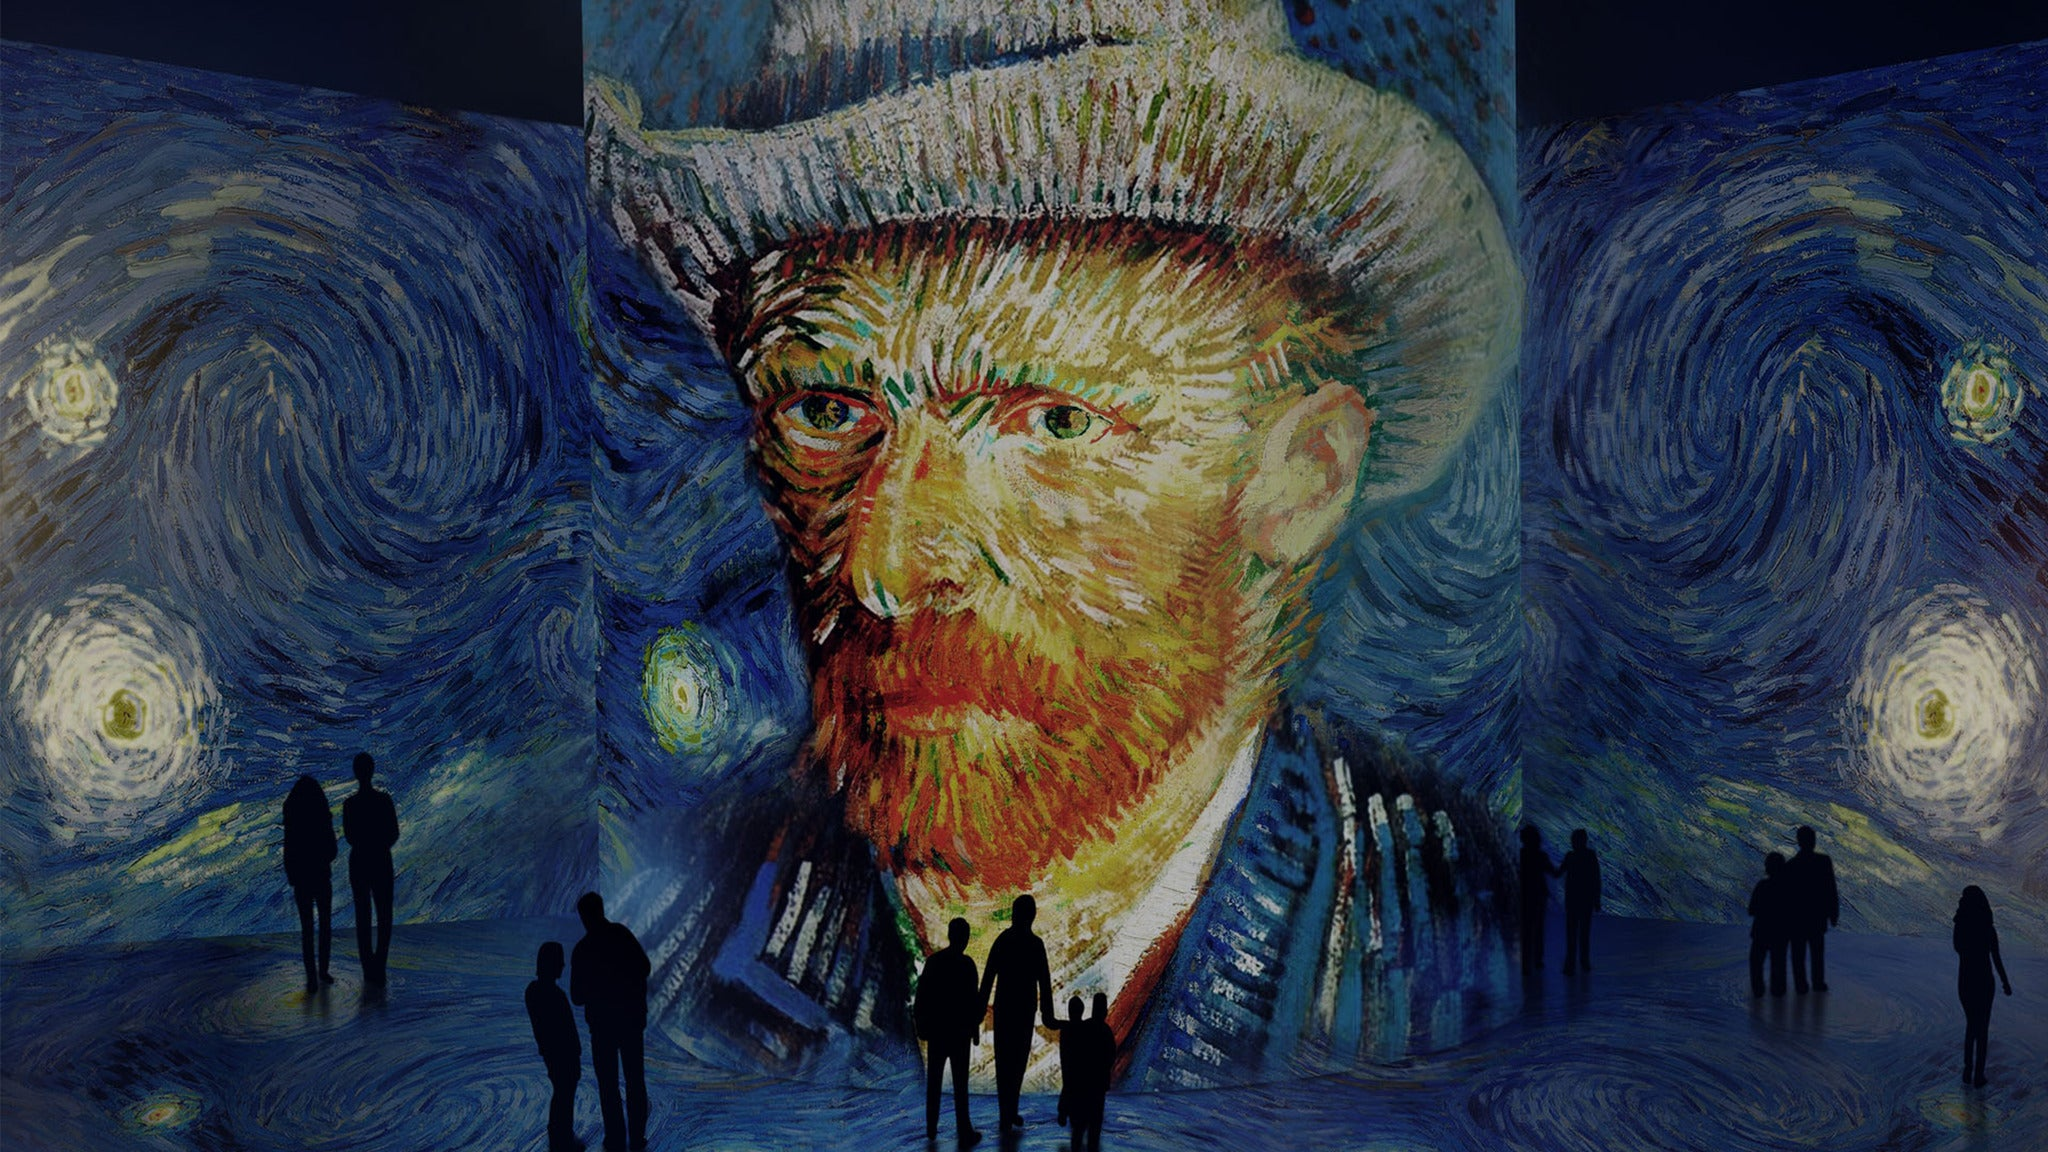 Immersive Van Gogh (Peak) at SVN West San Francisco - San Francisco, CA 94103